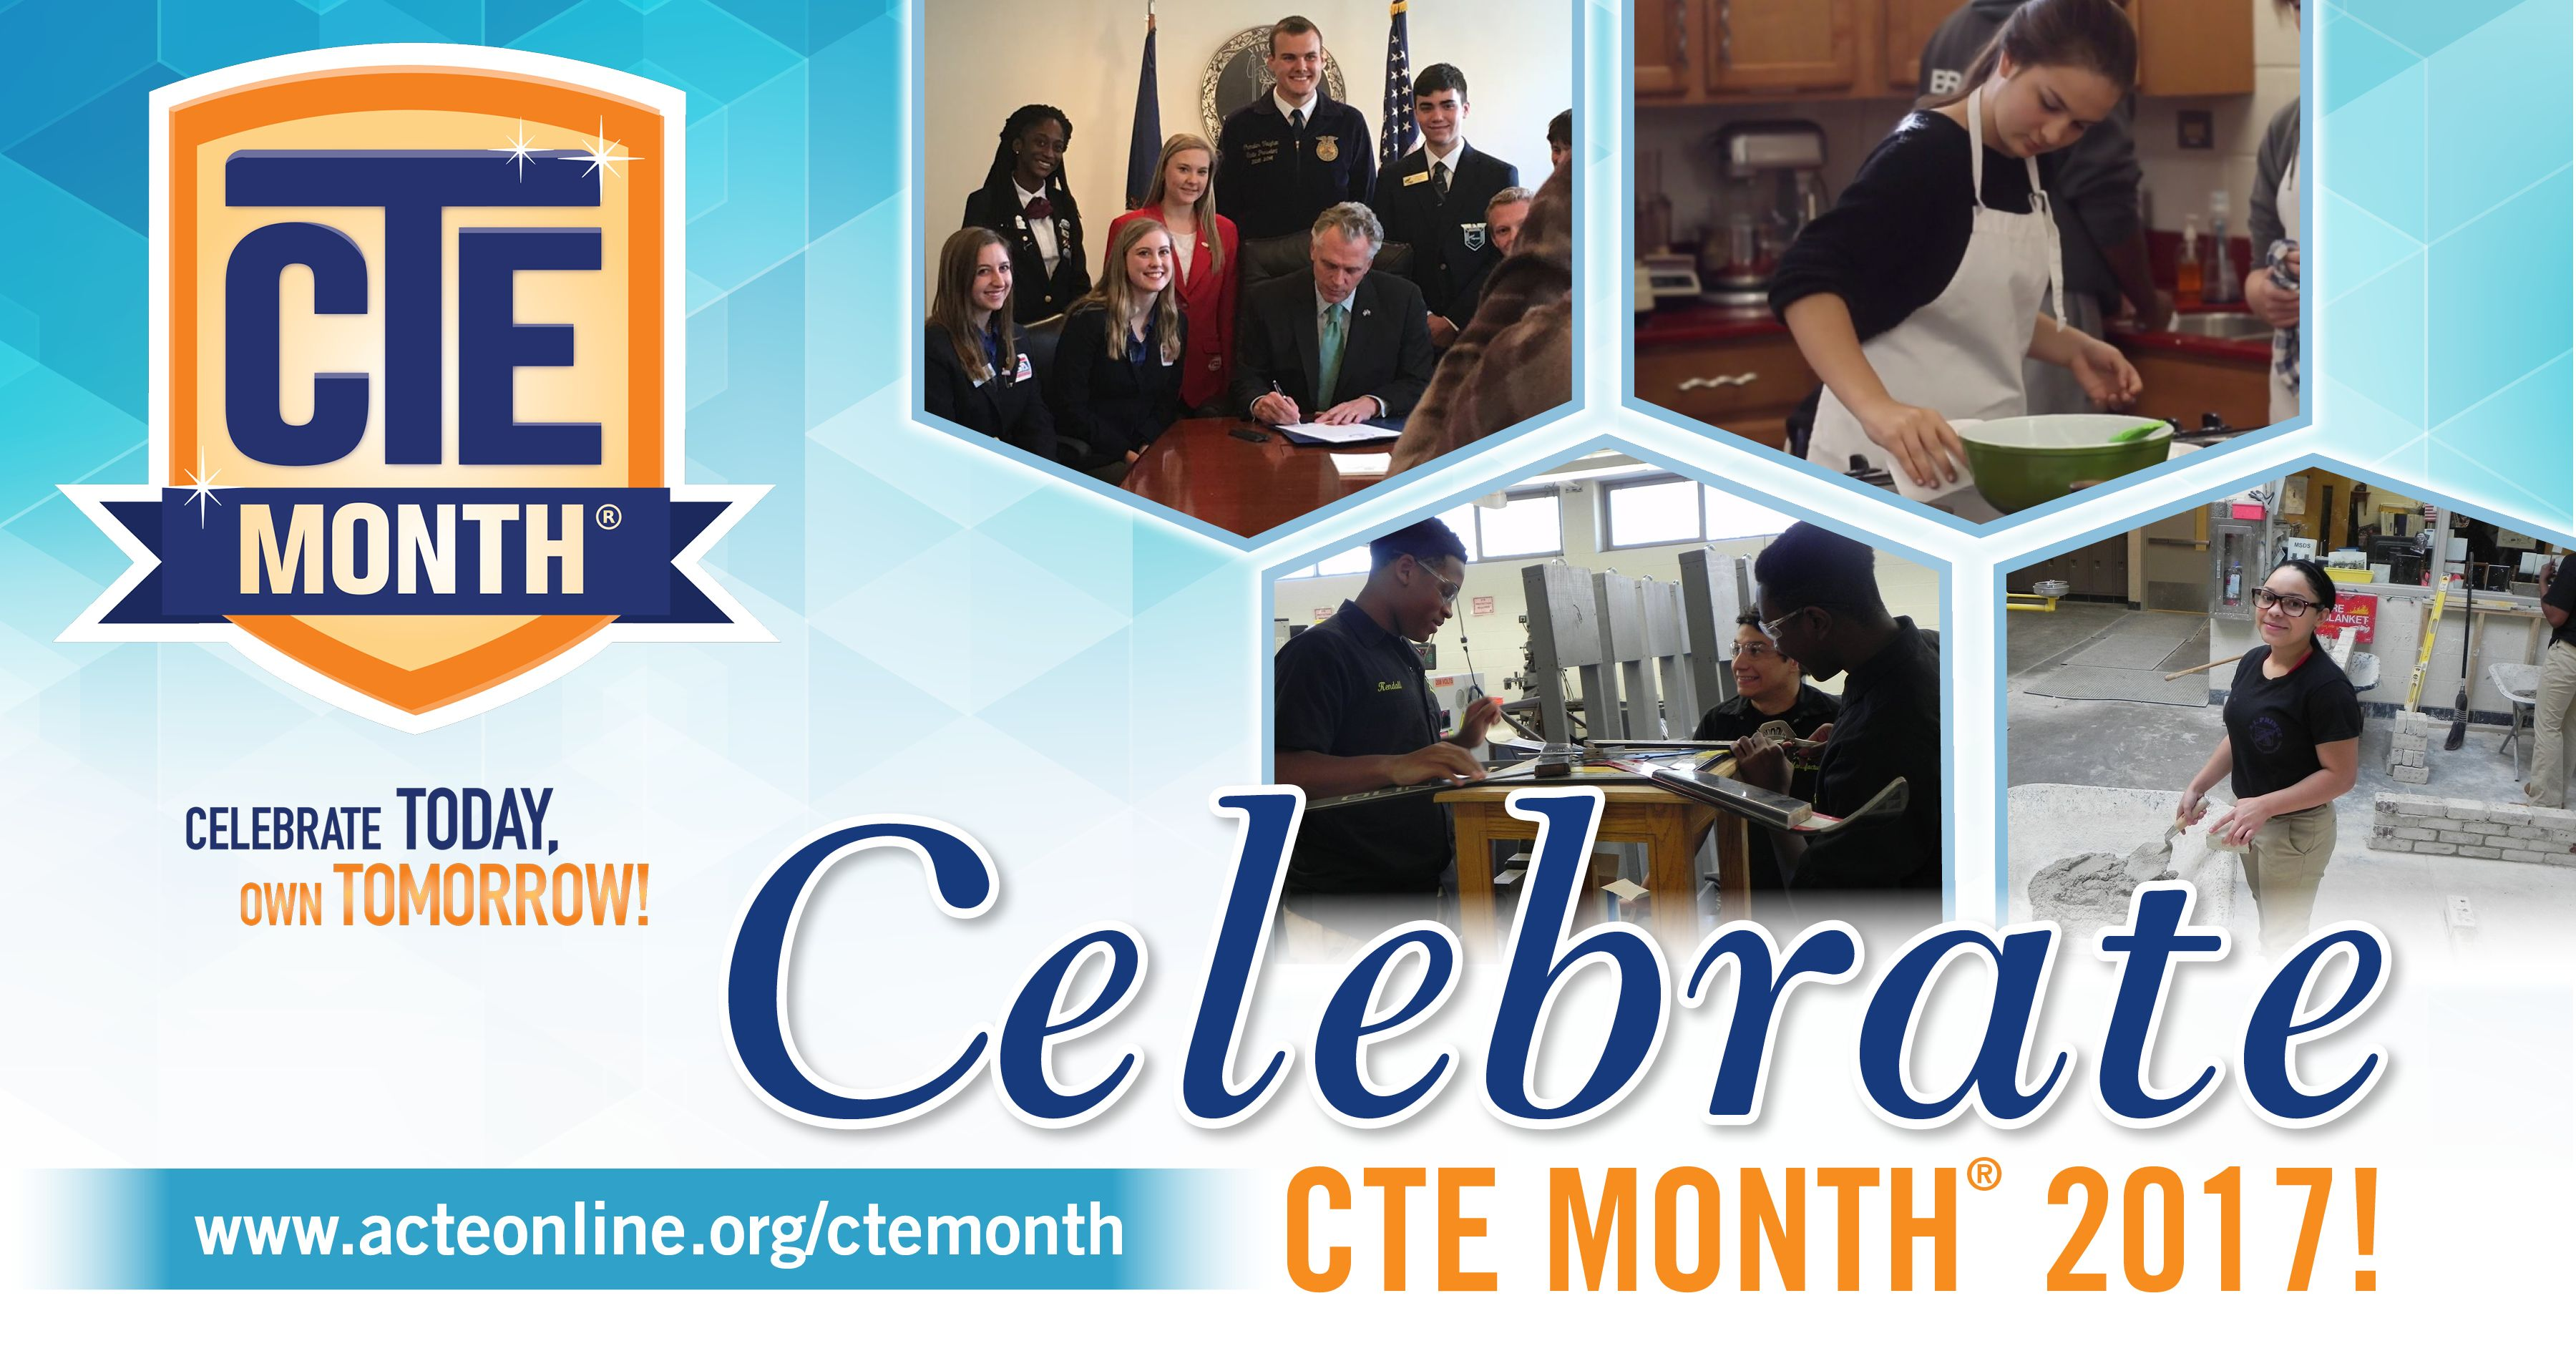 Cte Month Thunderclap Image Banner Career Counseling Career Planning Education